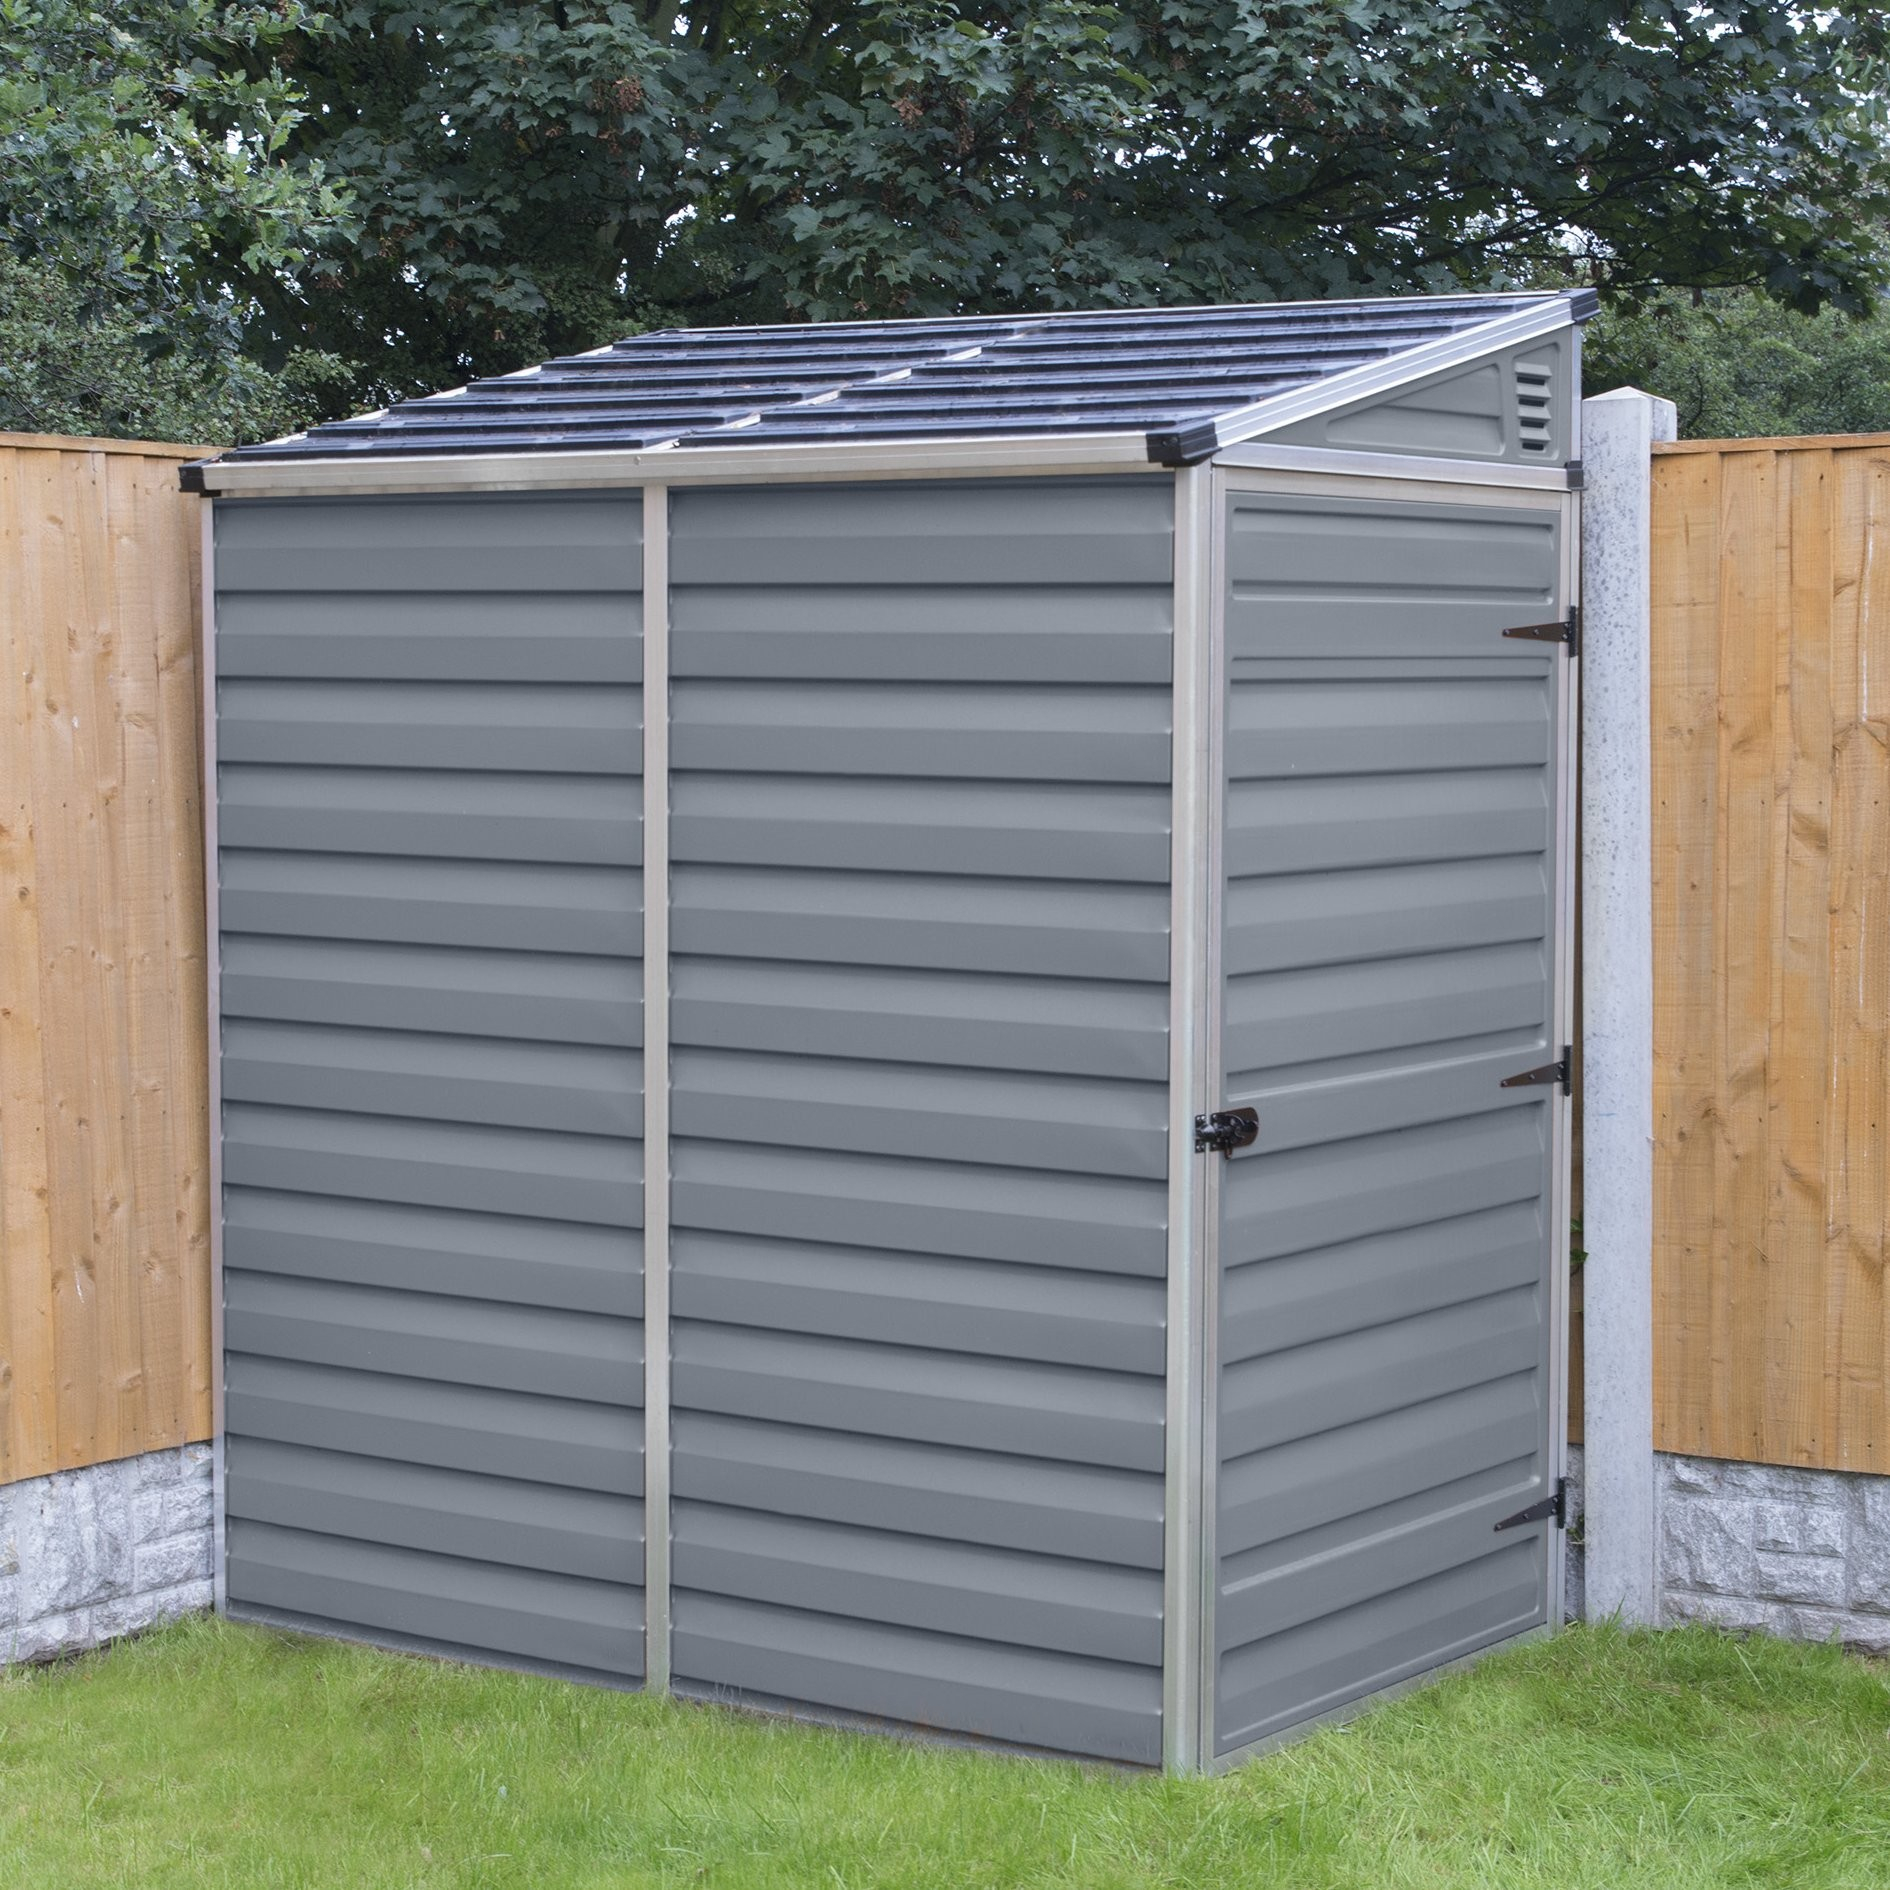 Palram 4x6 Lean To Skylight Storage Shed Kit Gray Hg9600t with regard to proportions 1890 X 1890